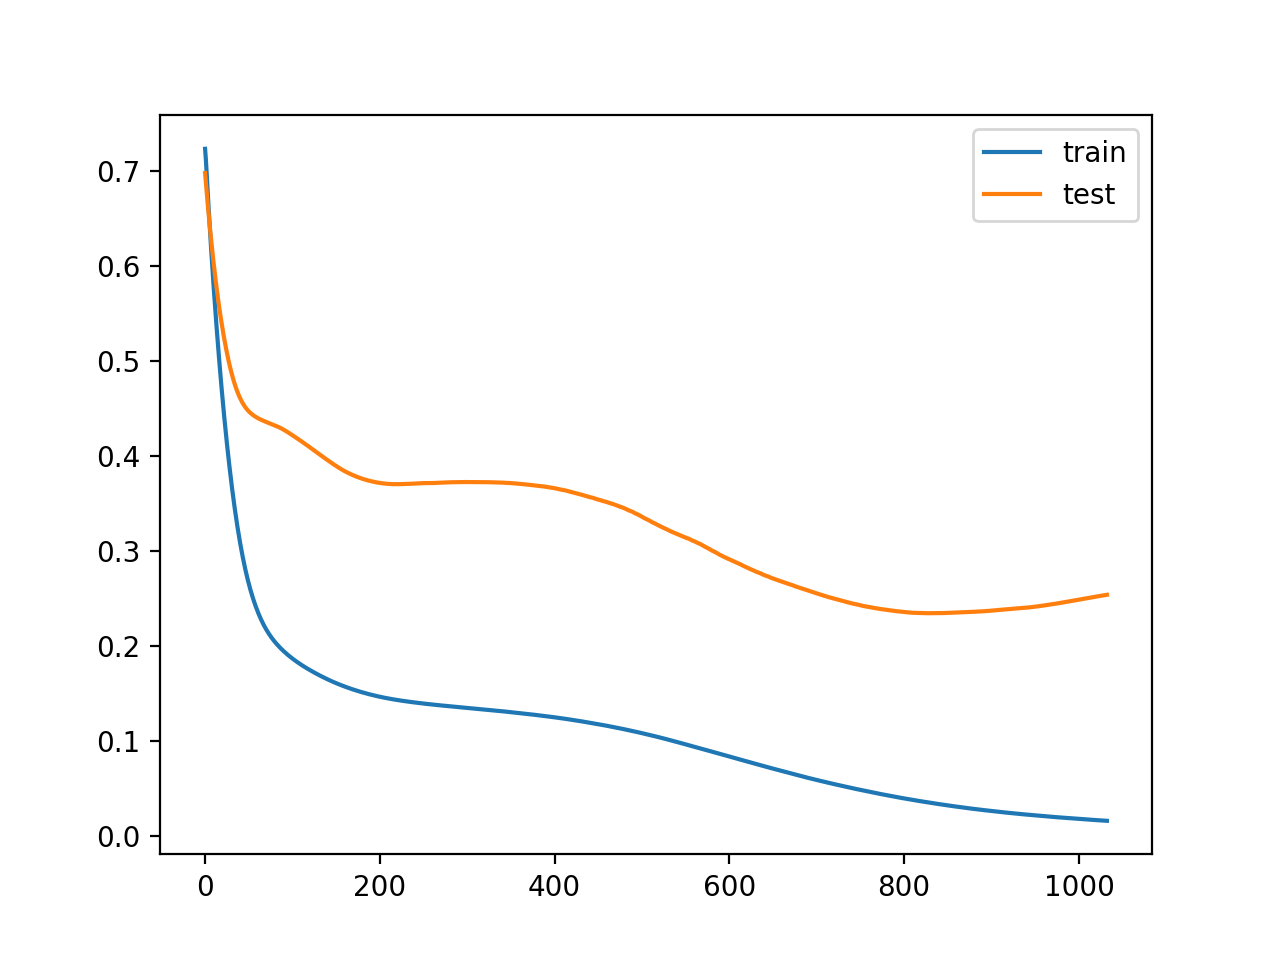 Line Plot of Train and Test Loss During Training With Patient Early Stopping